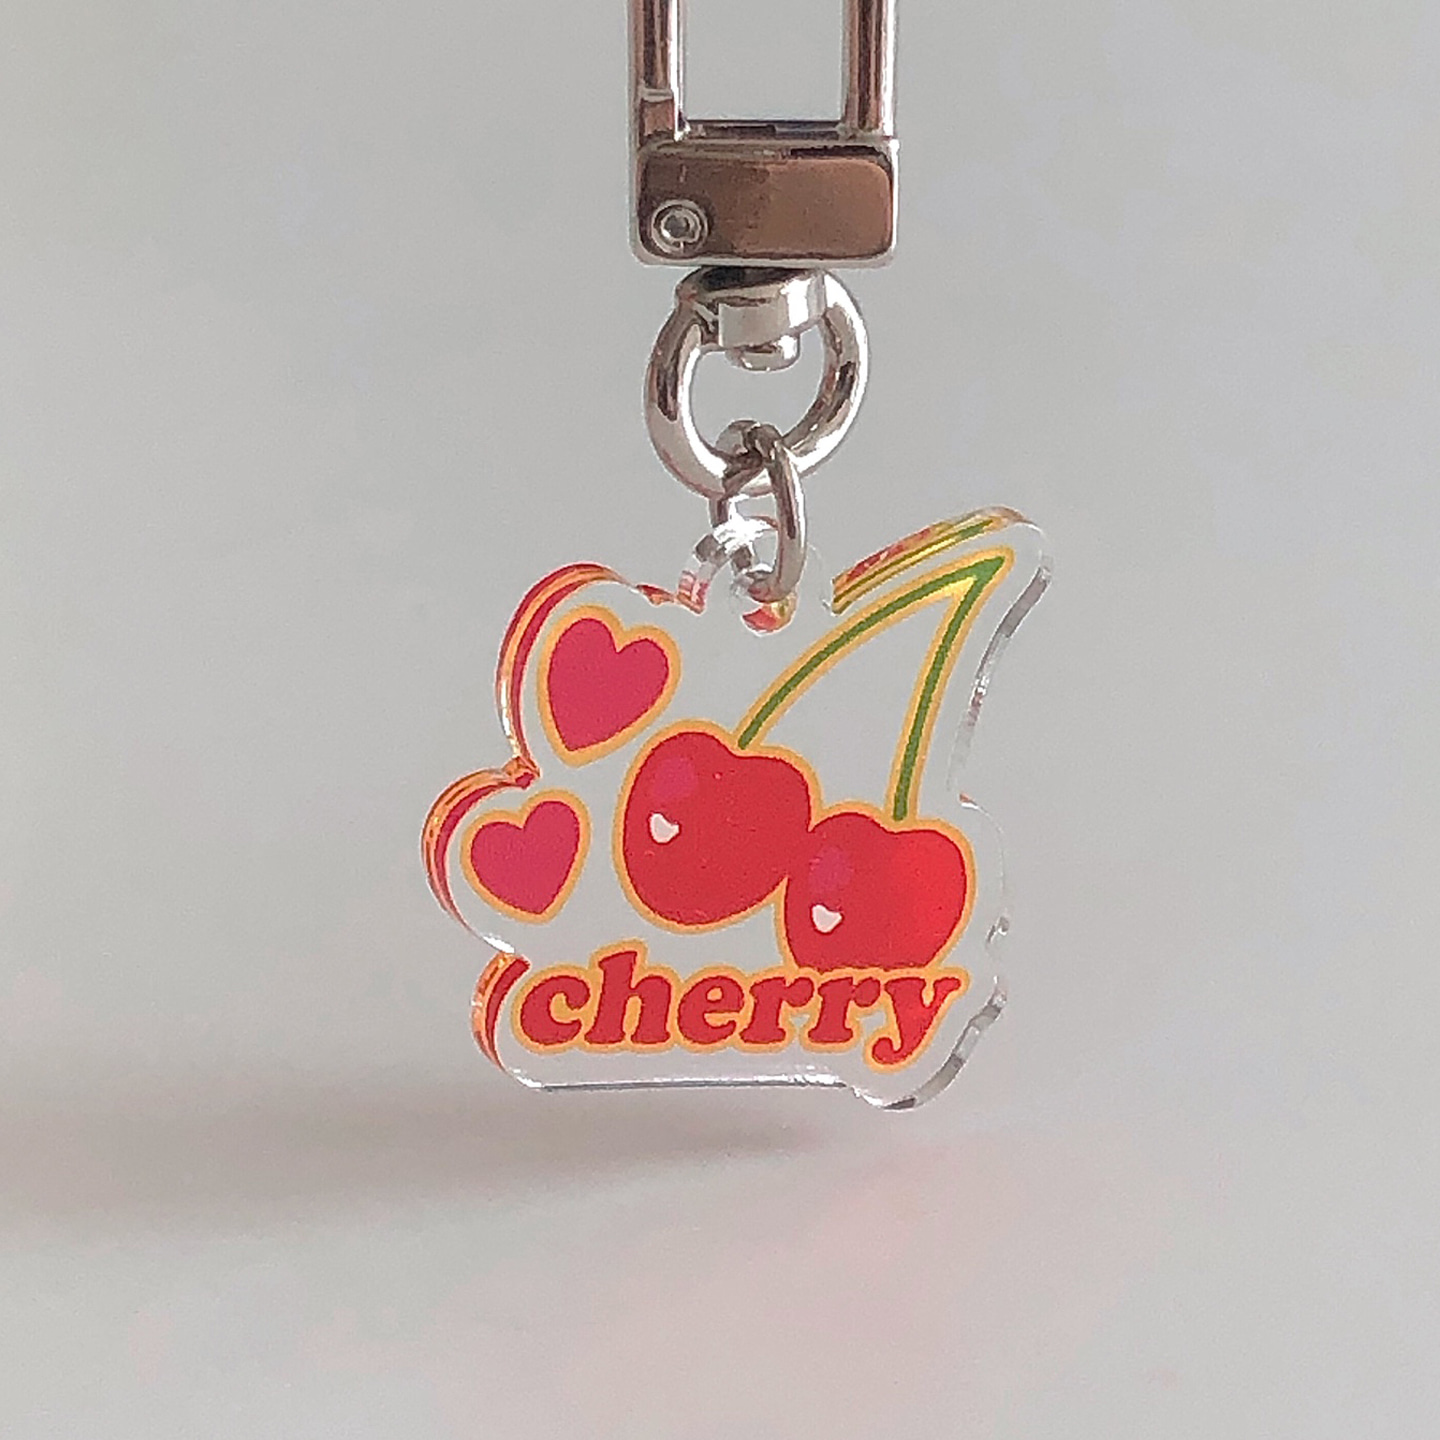 Cherry cherry key ring (아크릴)